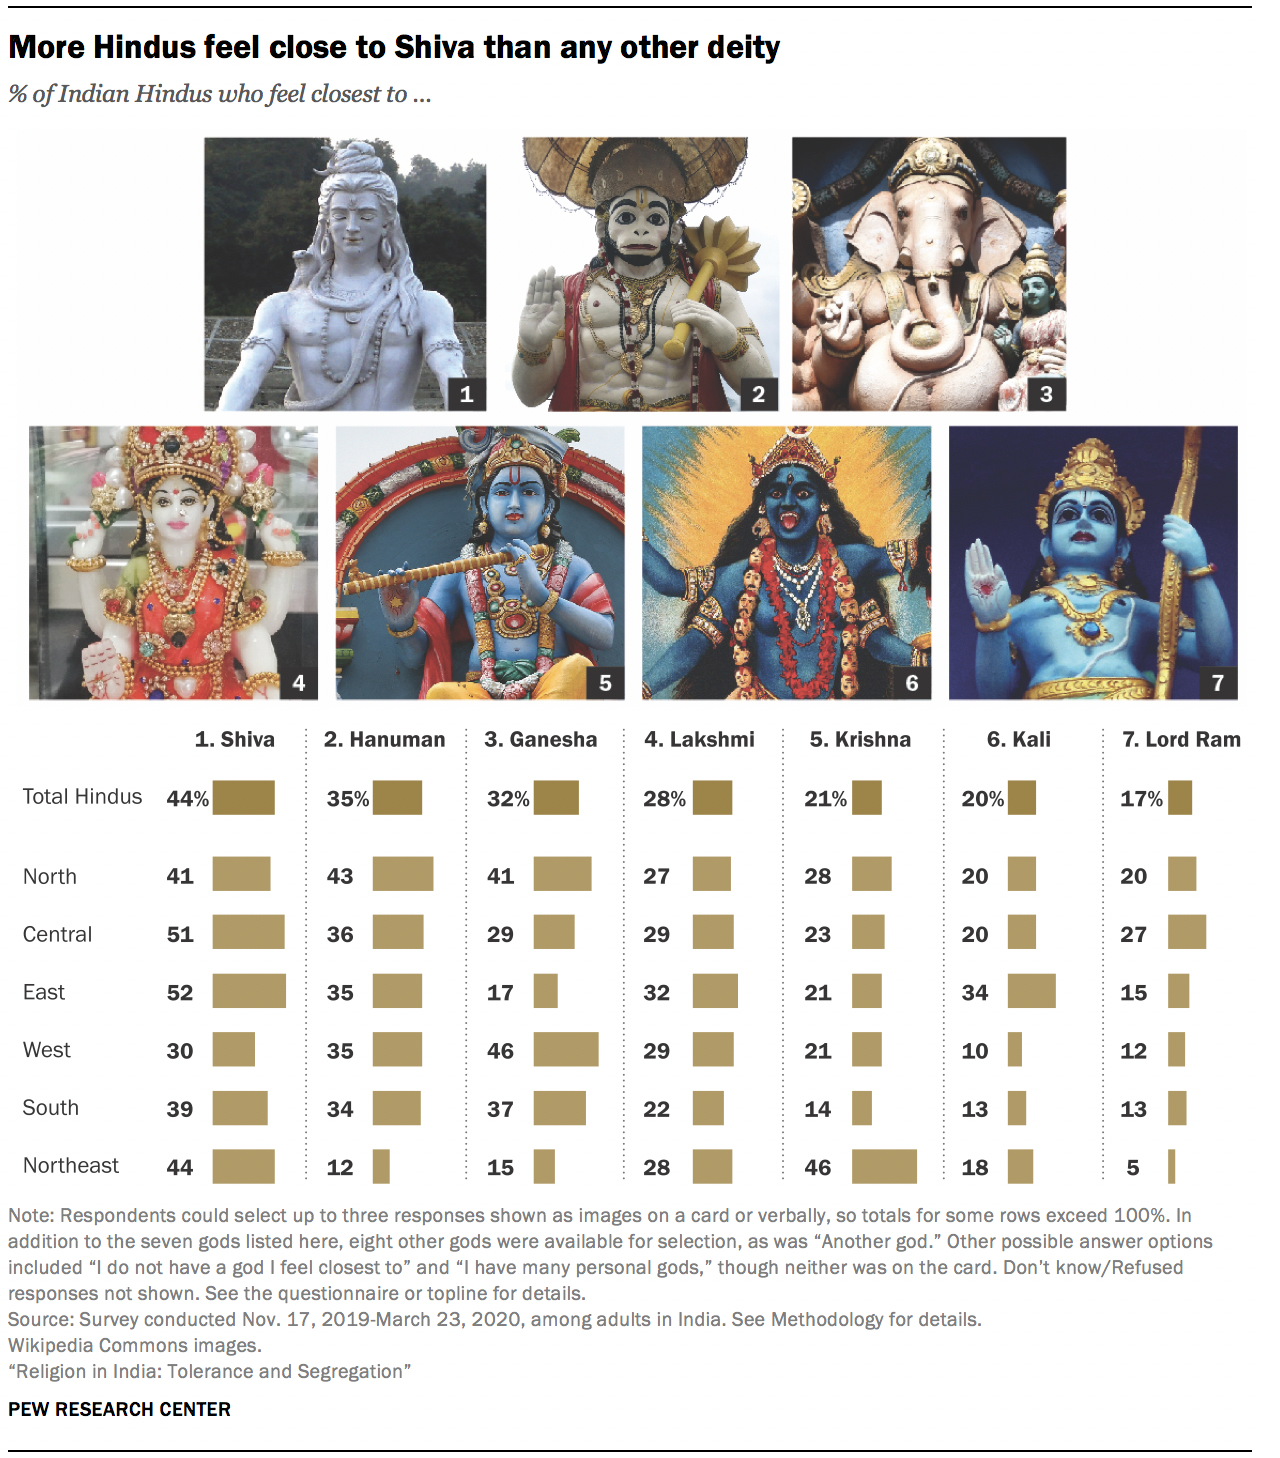 More Hindus feel close to Shiva than any other deity